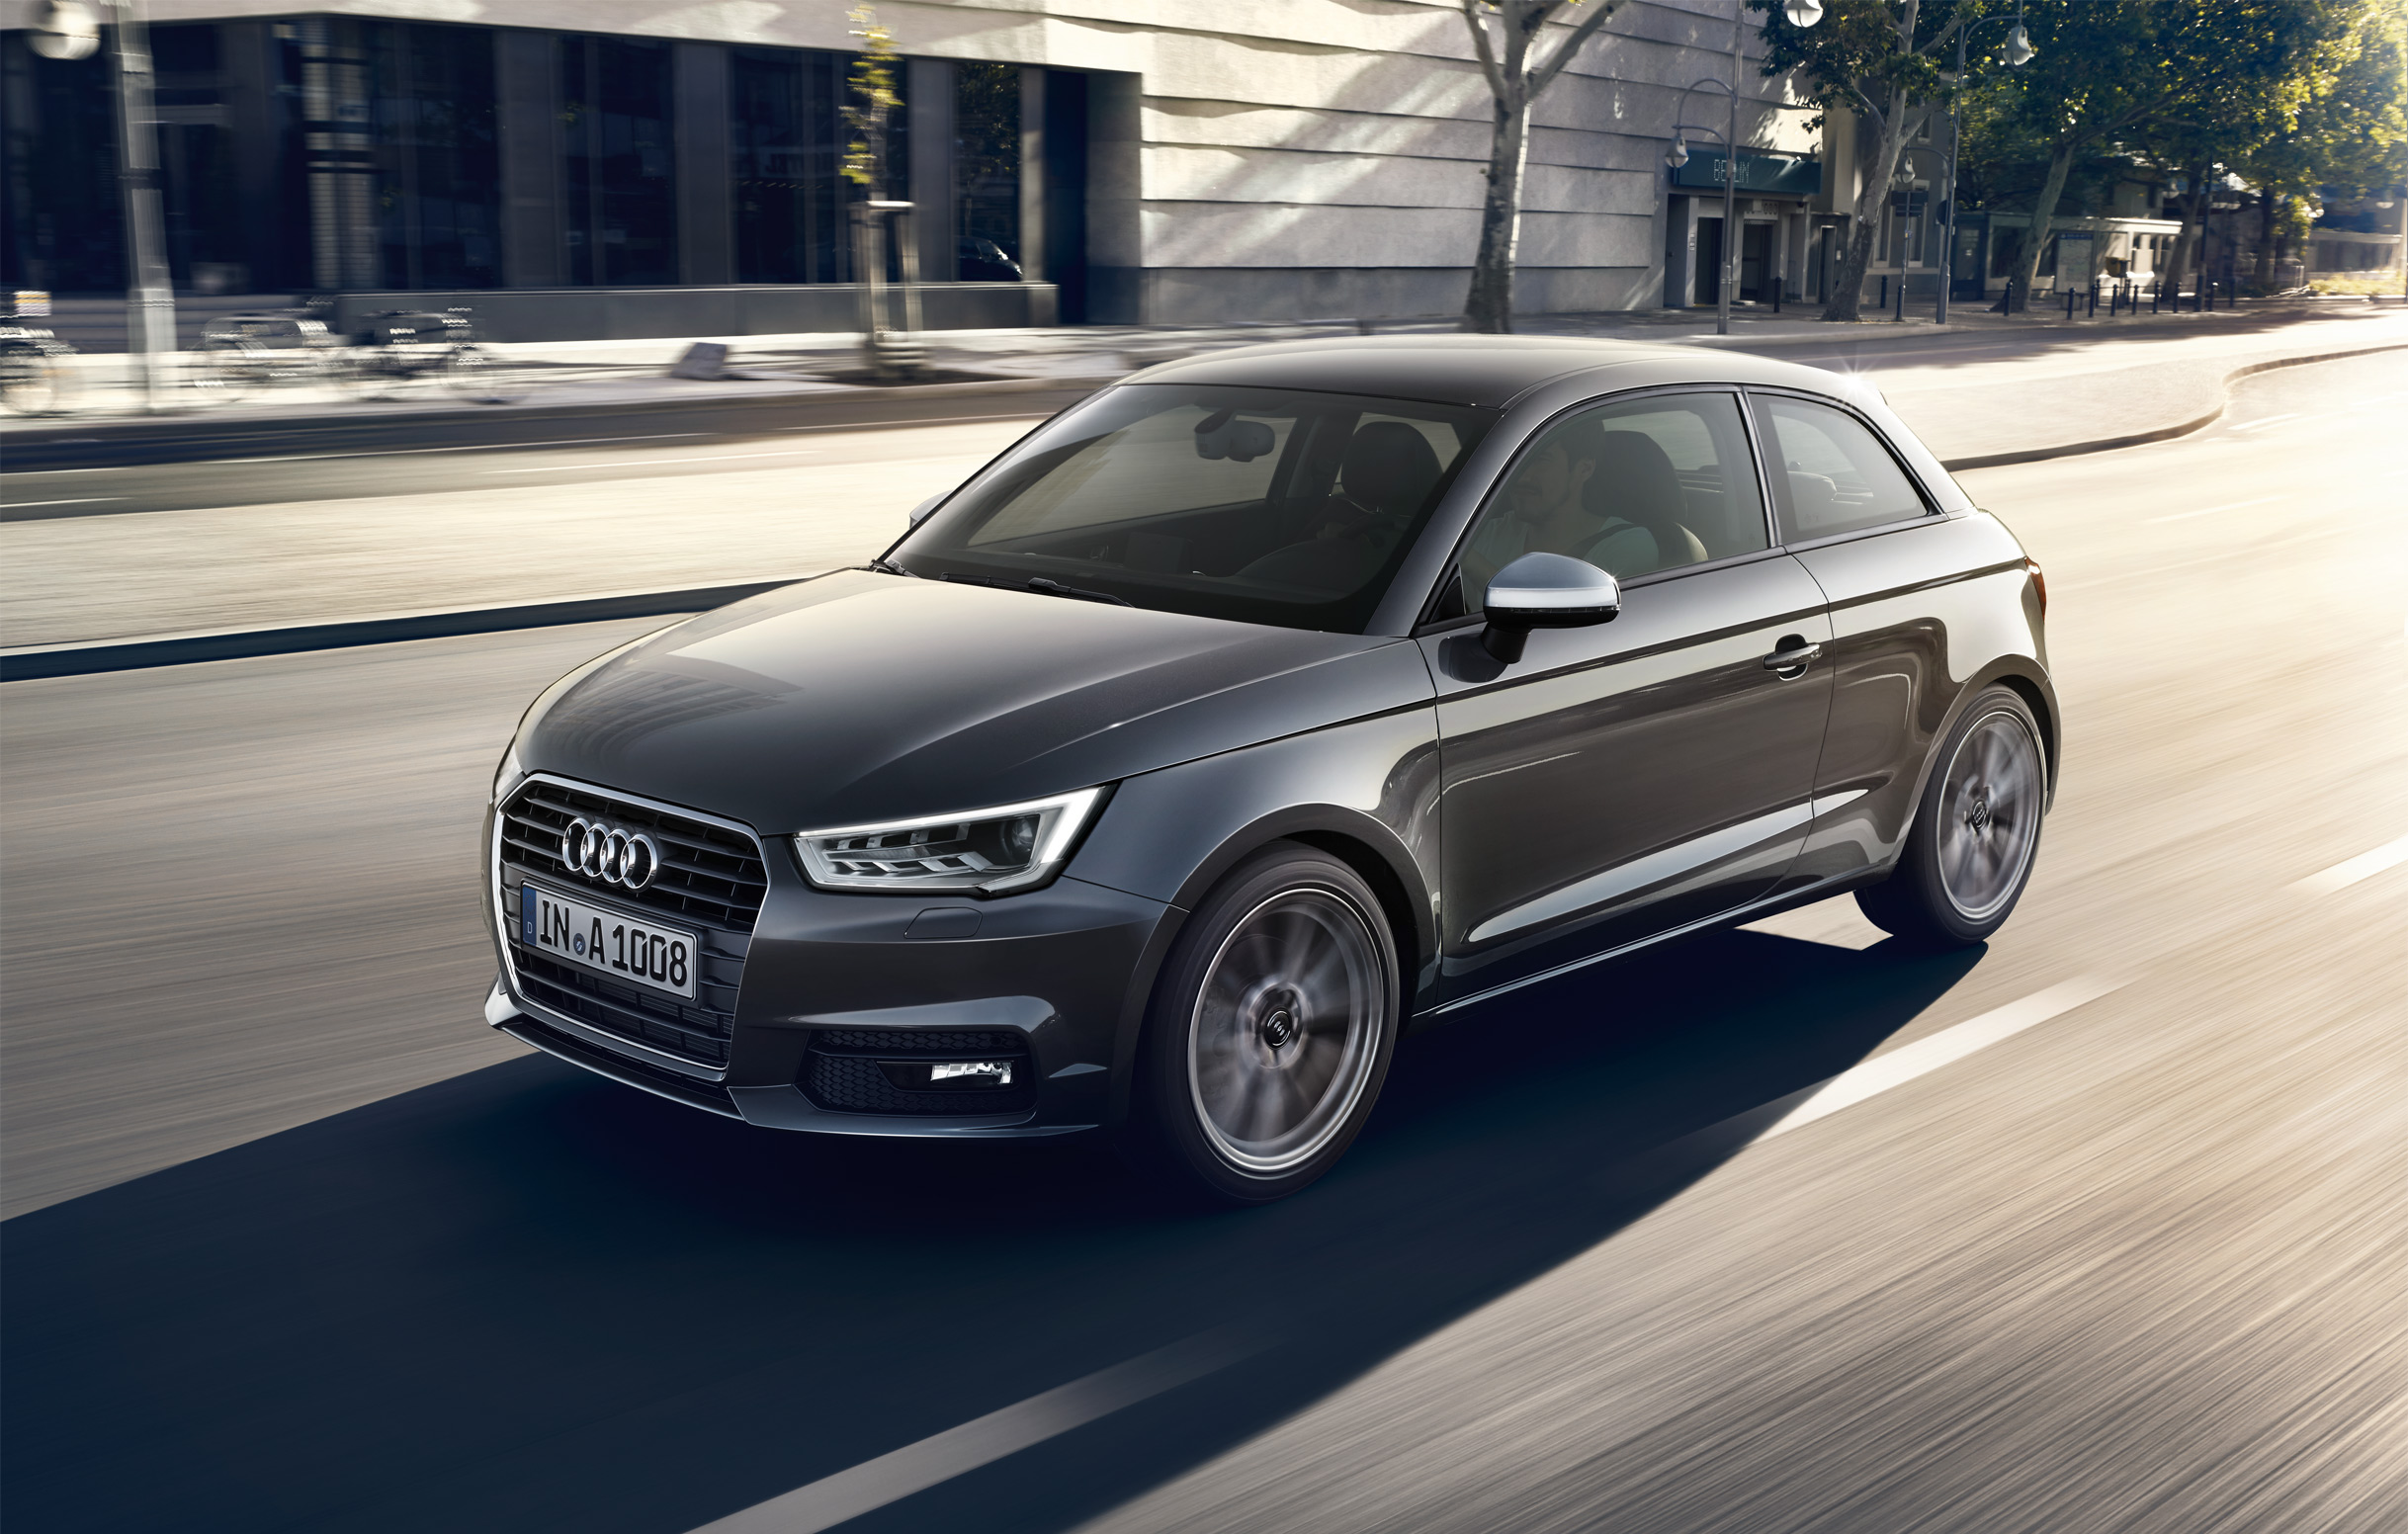 Pictures of audi a1 #2